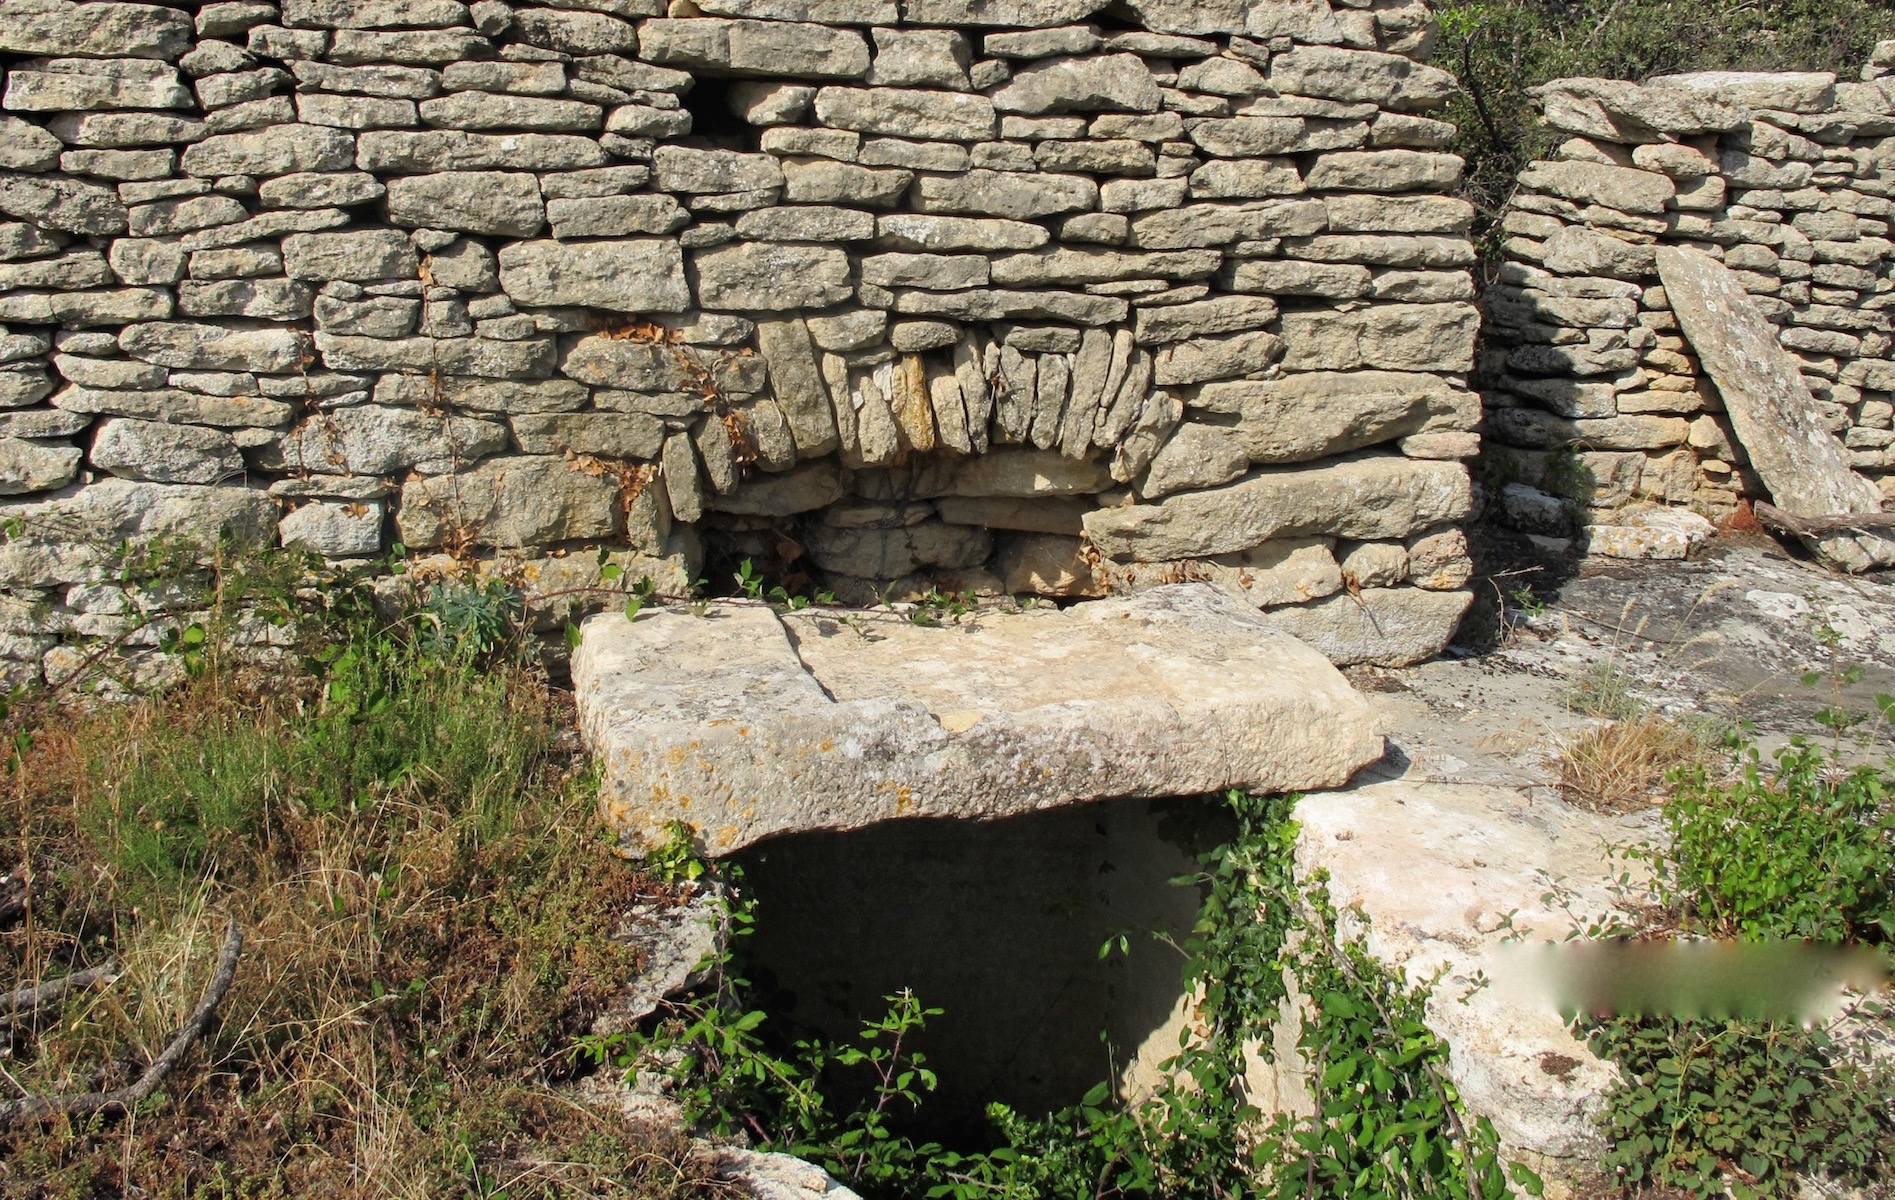 From a hole below the stone slab, wine was poured from the vat into containers